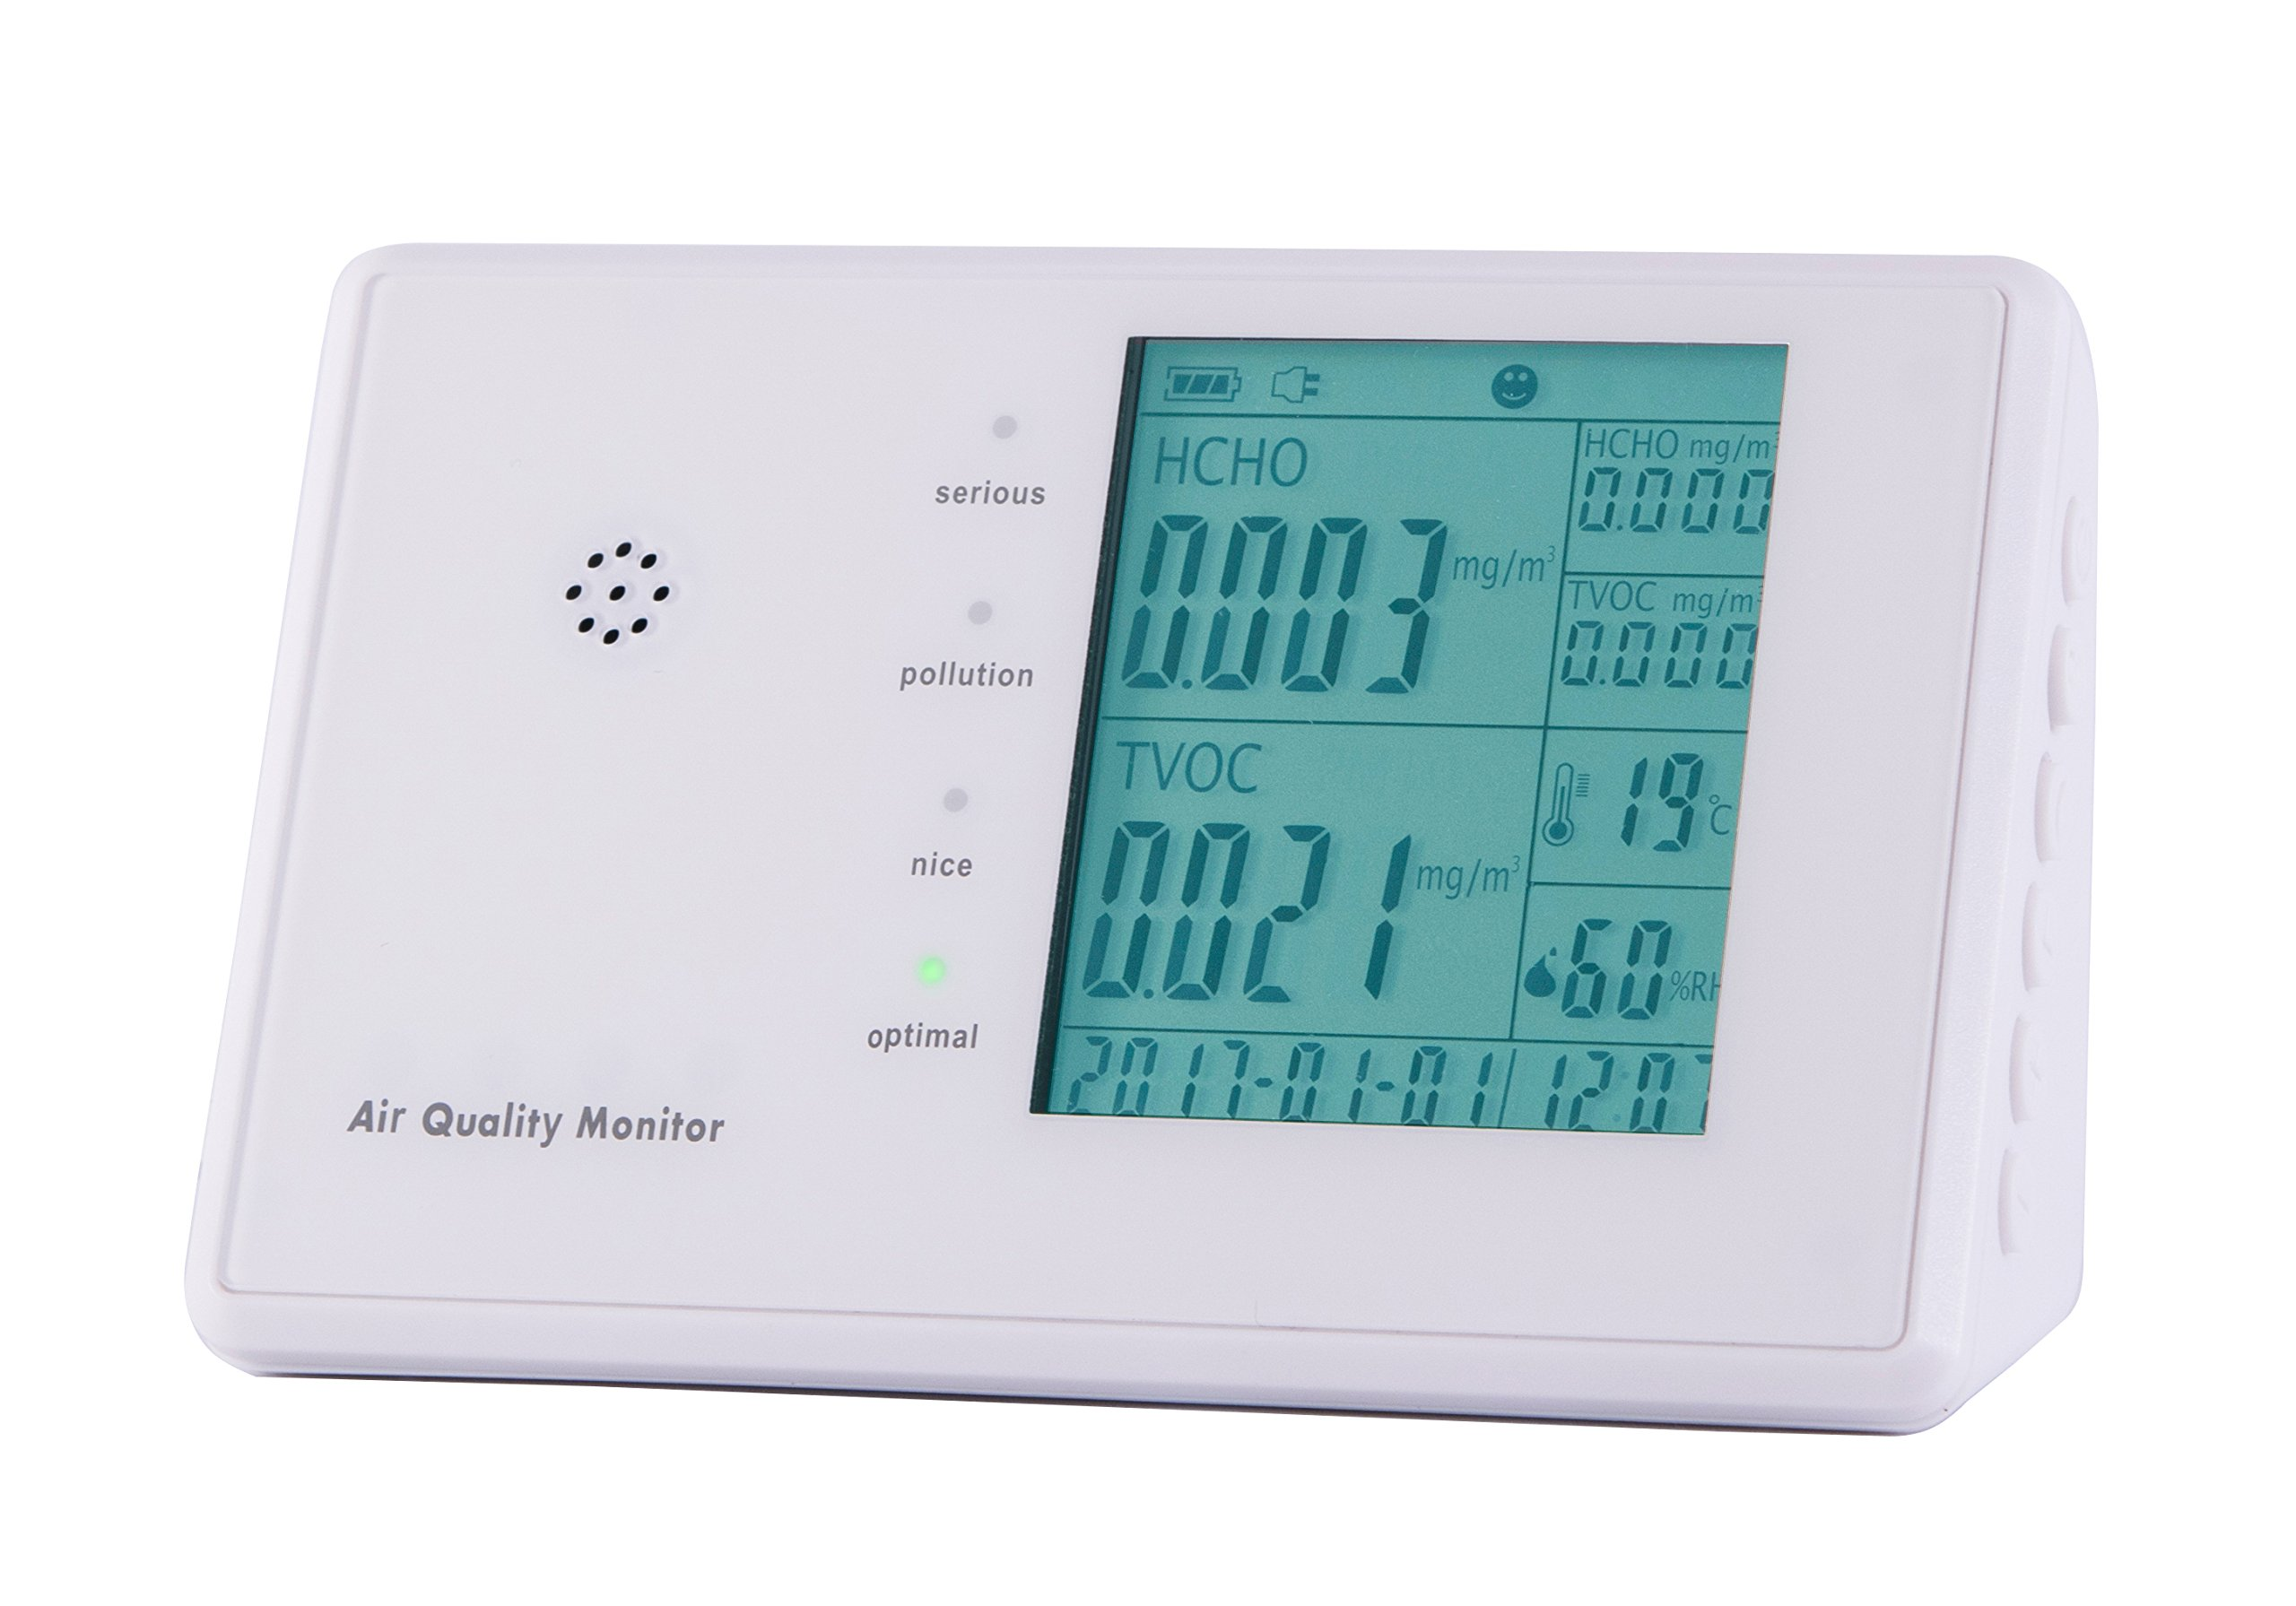 6 in 1 Multifunctional Indoor Air Quality Monitor – Track What's in the Air that Surrounds You (with rechargeable battery)